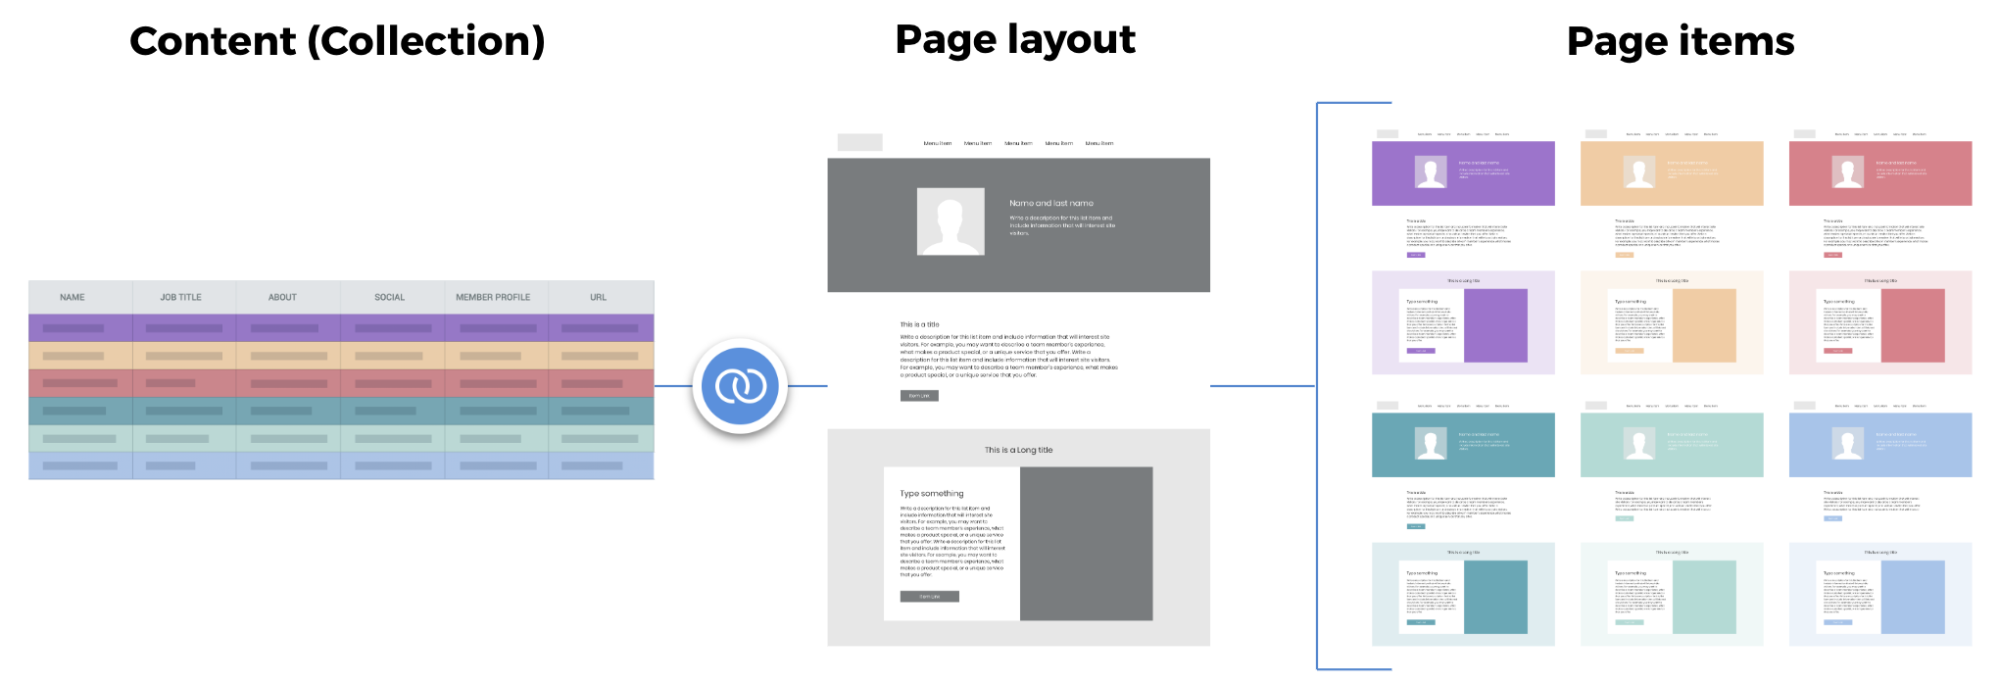 Flow of collection content into real pages